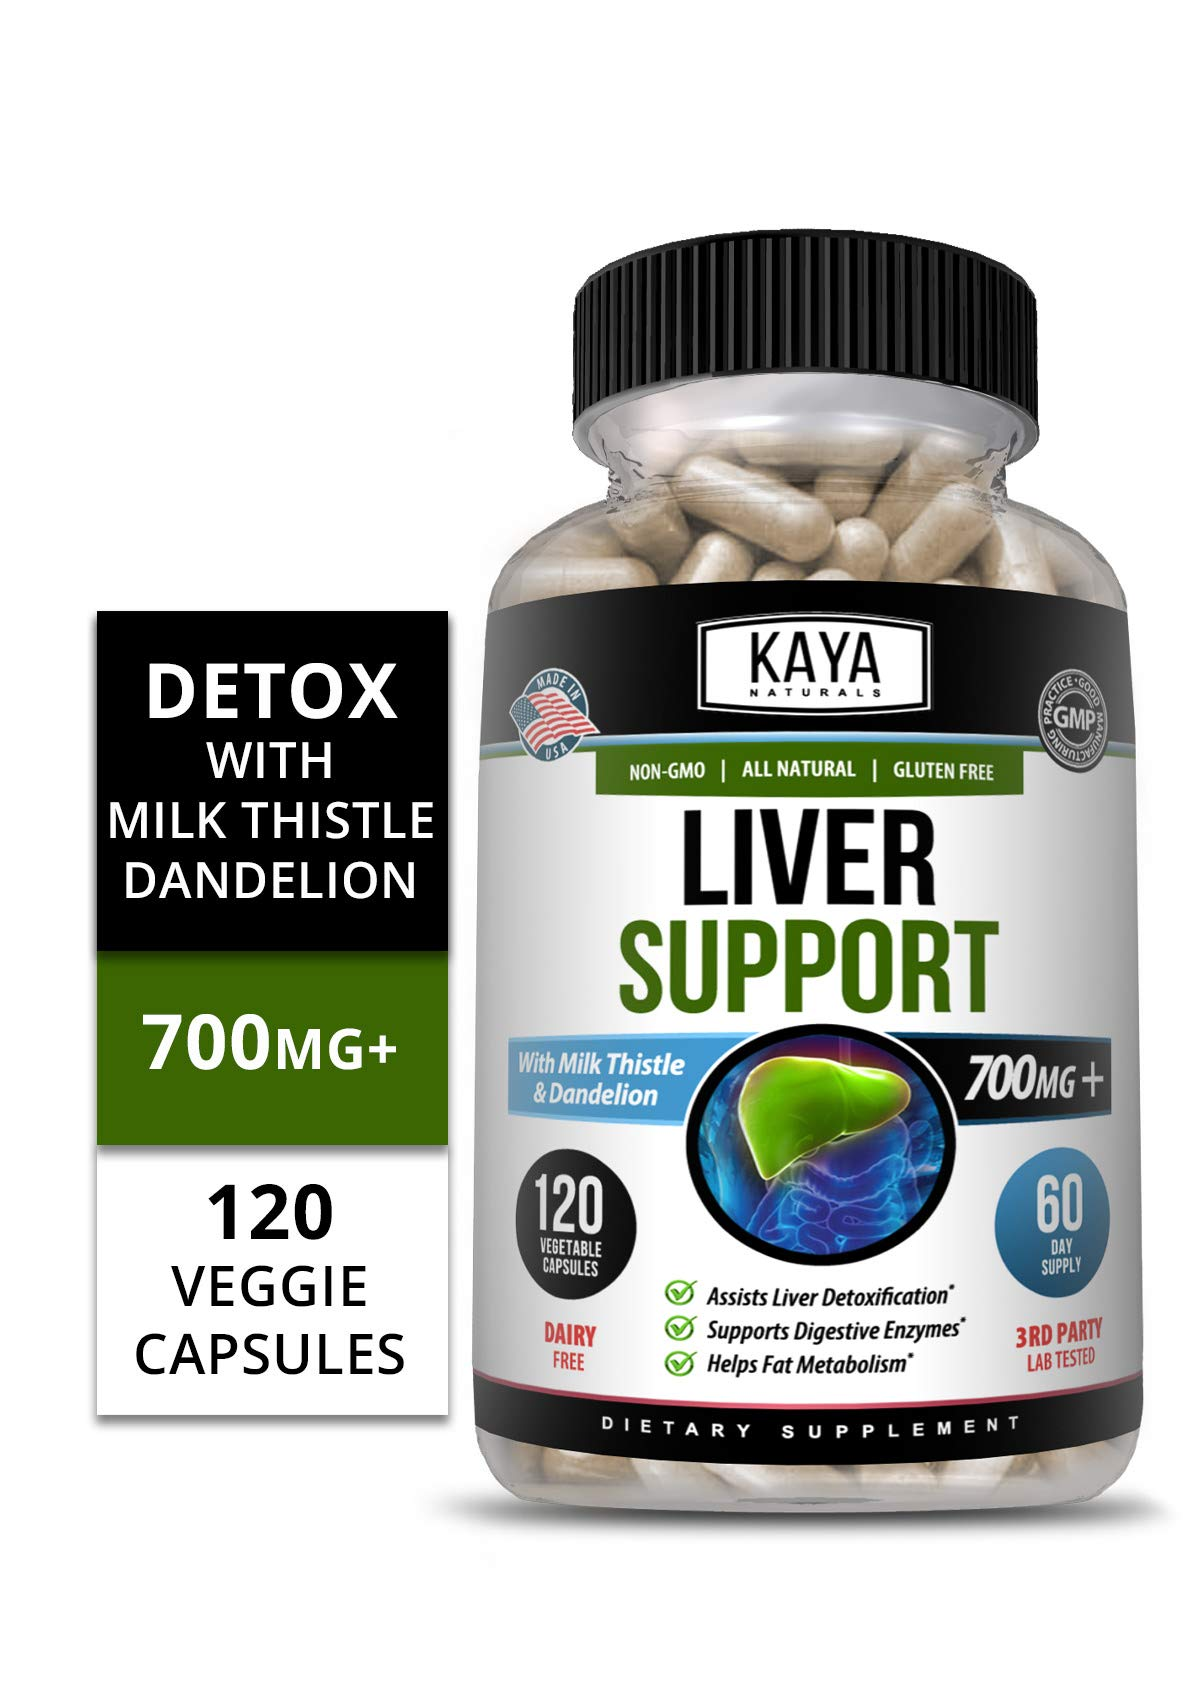 Kaya Naturals Liver Support Vegetarian Capsules, 120 Count, Cleanse, Detox & Repair Formula with 22 Herbs Including MilkThistle Extracts, Beet, Artichoke, Dandelion, Chicory Root (120 Capsules)